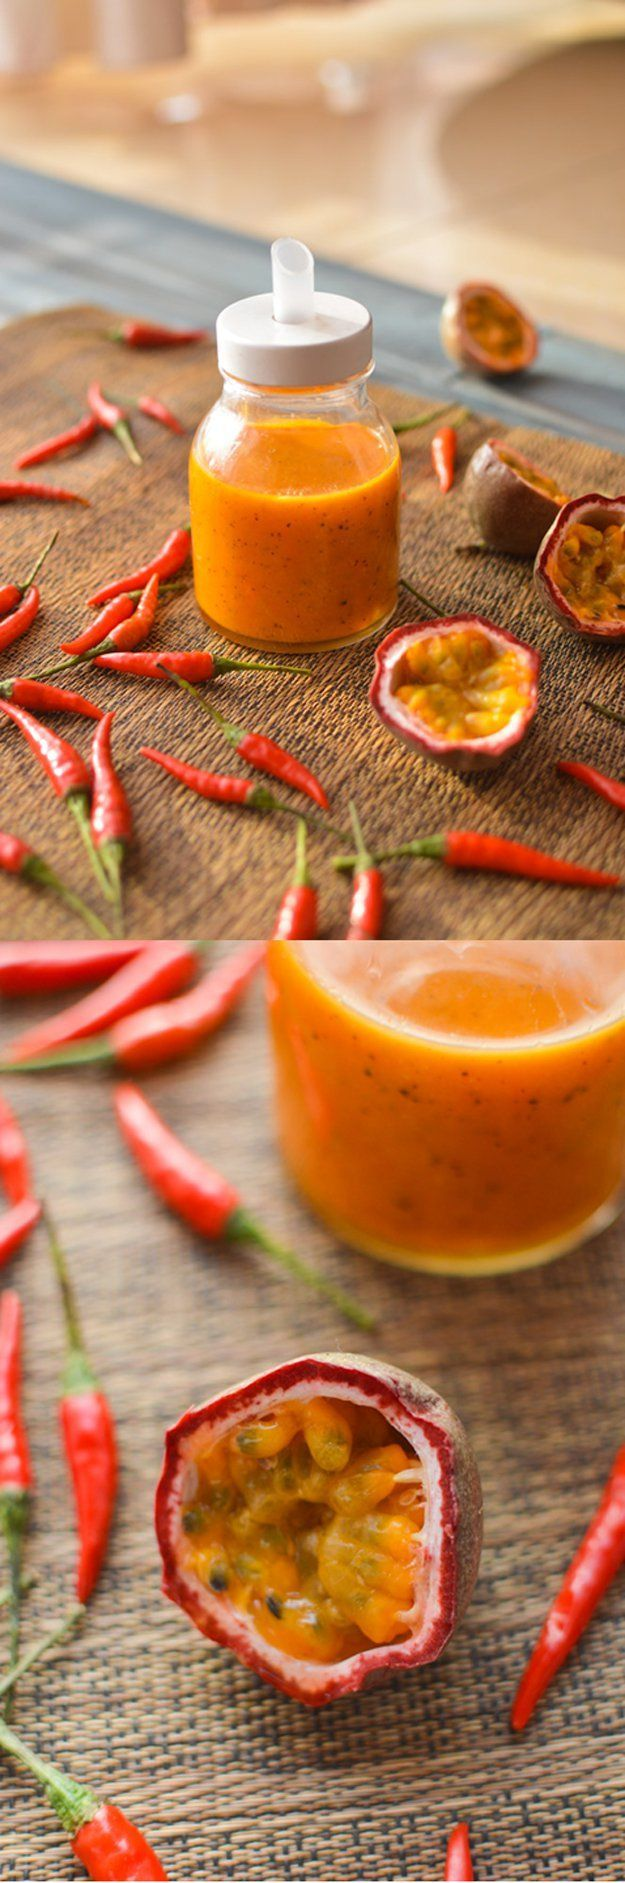 DIY Easy Hot Sauce Recipes | https://diyprojects.com/top-14-hot-sauce-recipes/